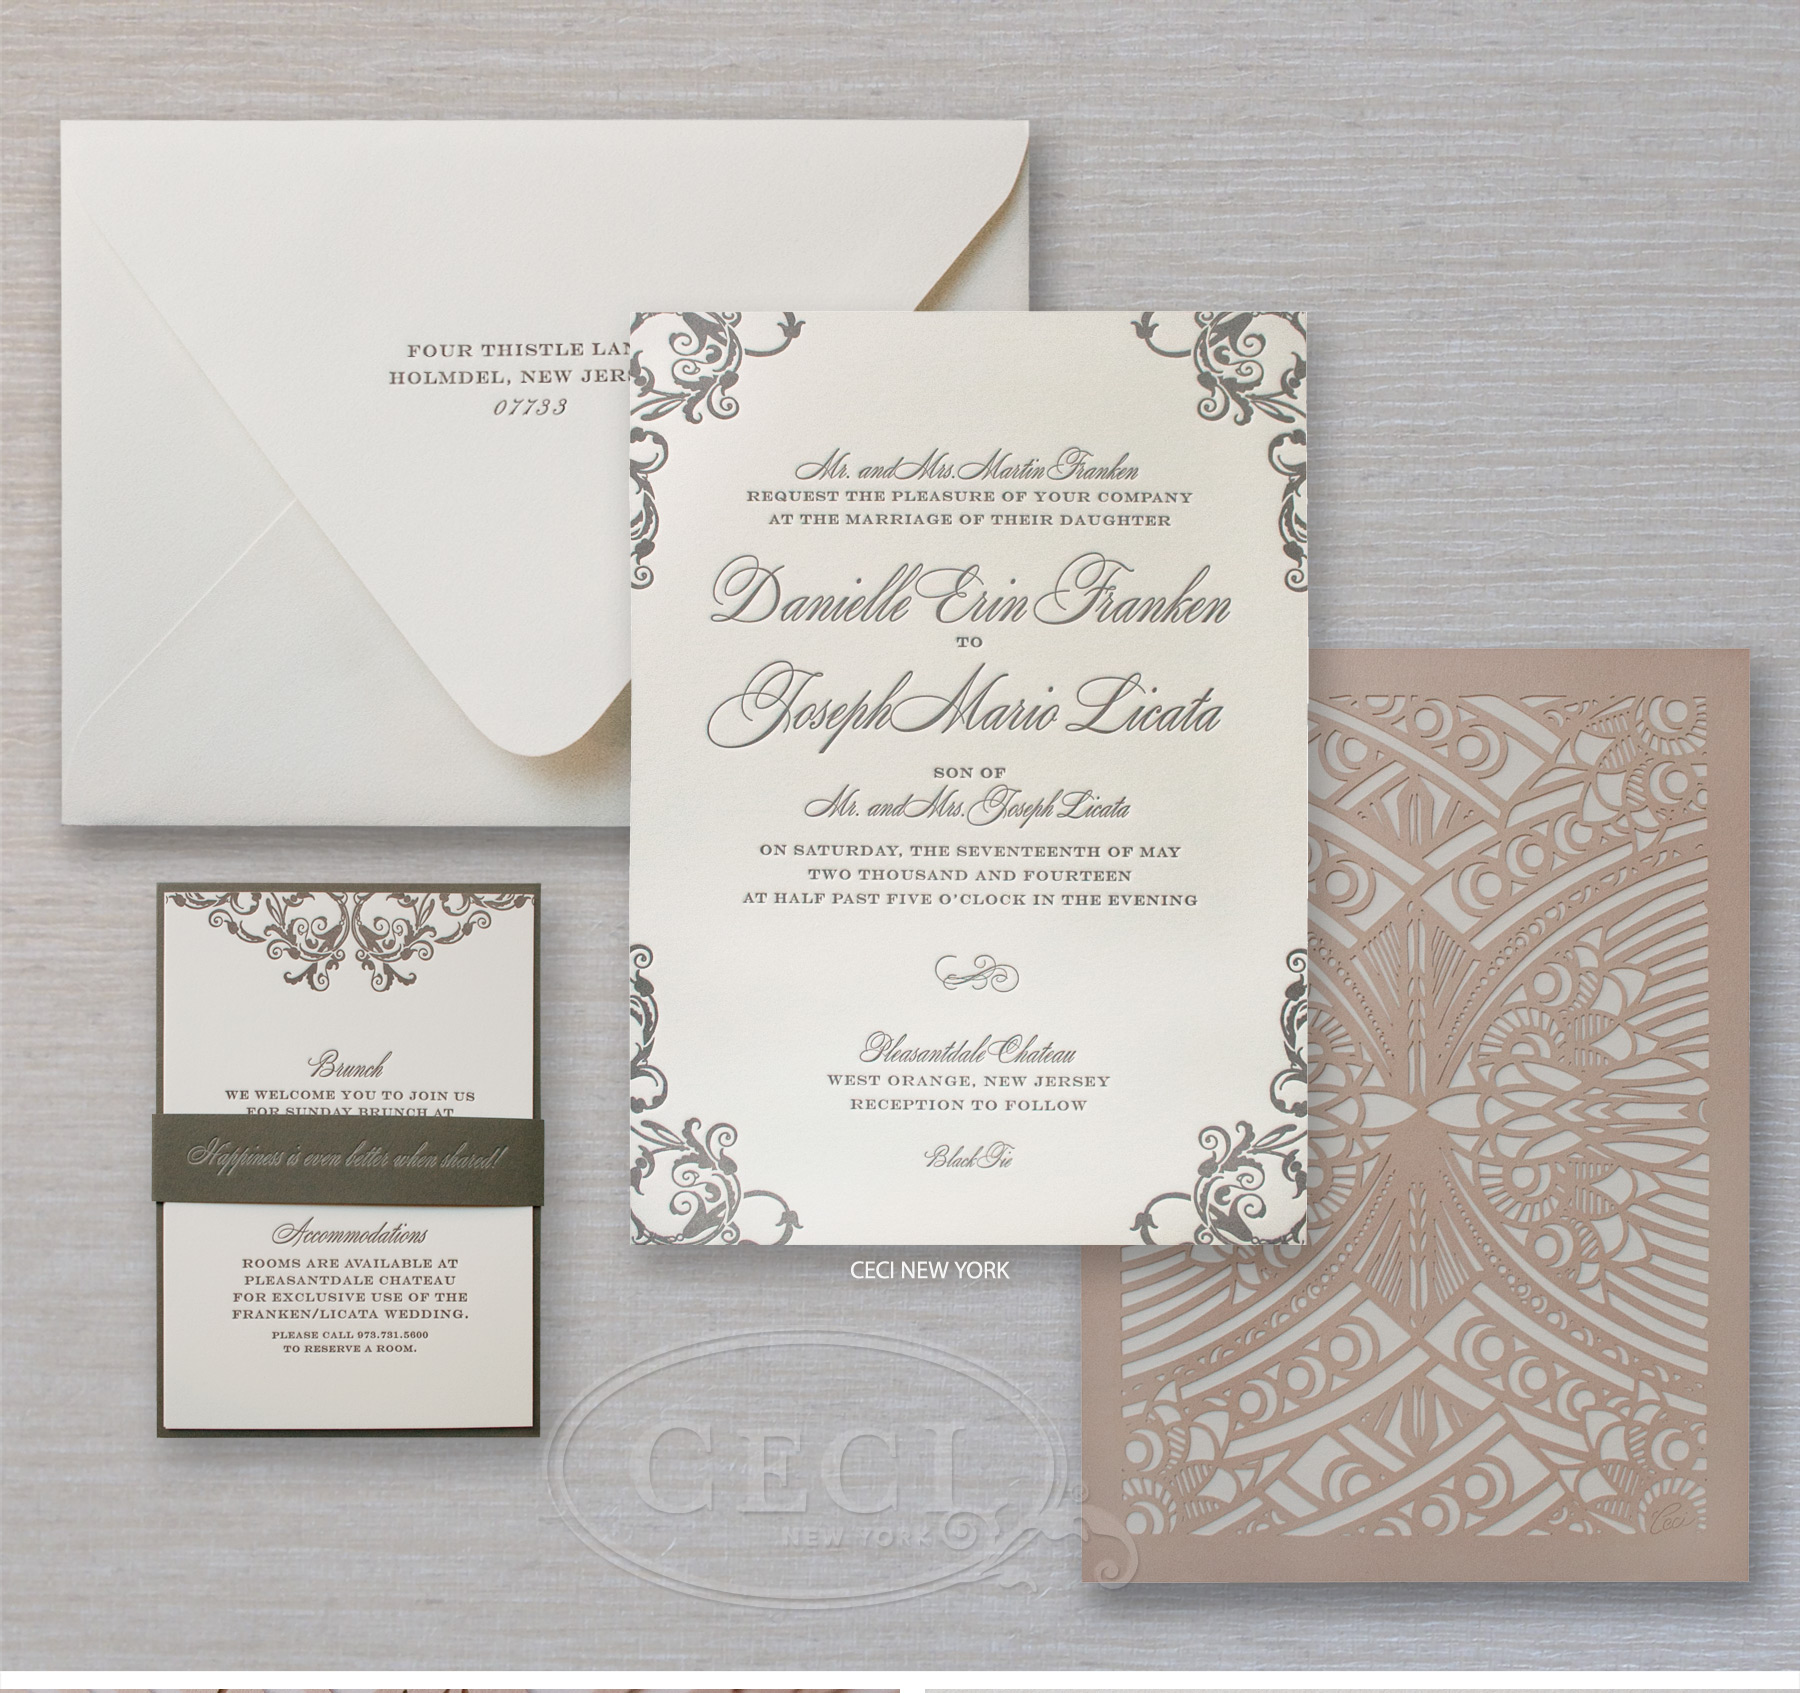 Ideas Bed Bath And Beyond Wedding Invitations wedding invitations new jersey skyline chateau in ceci york invitations